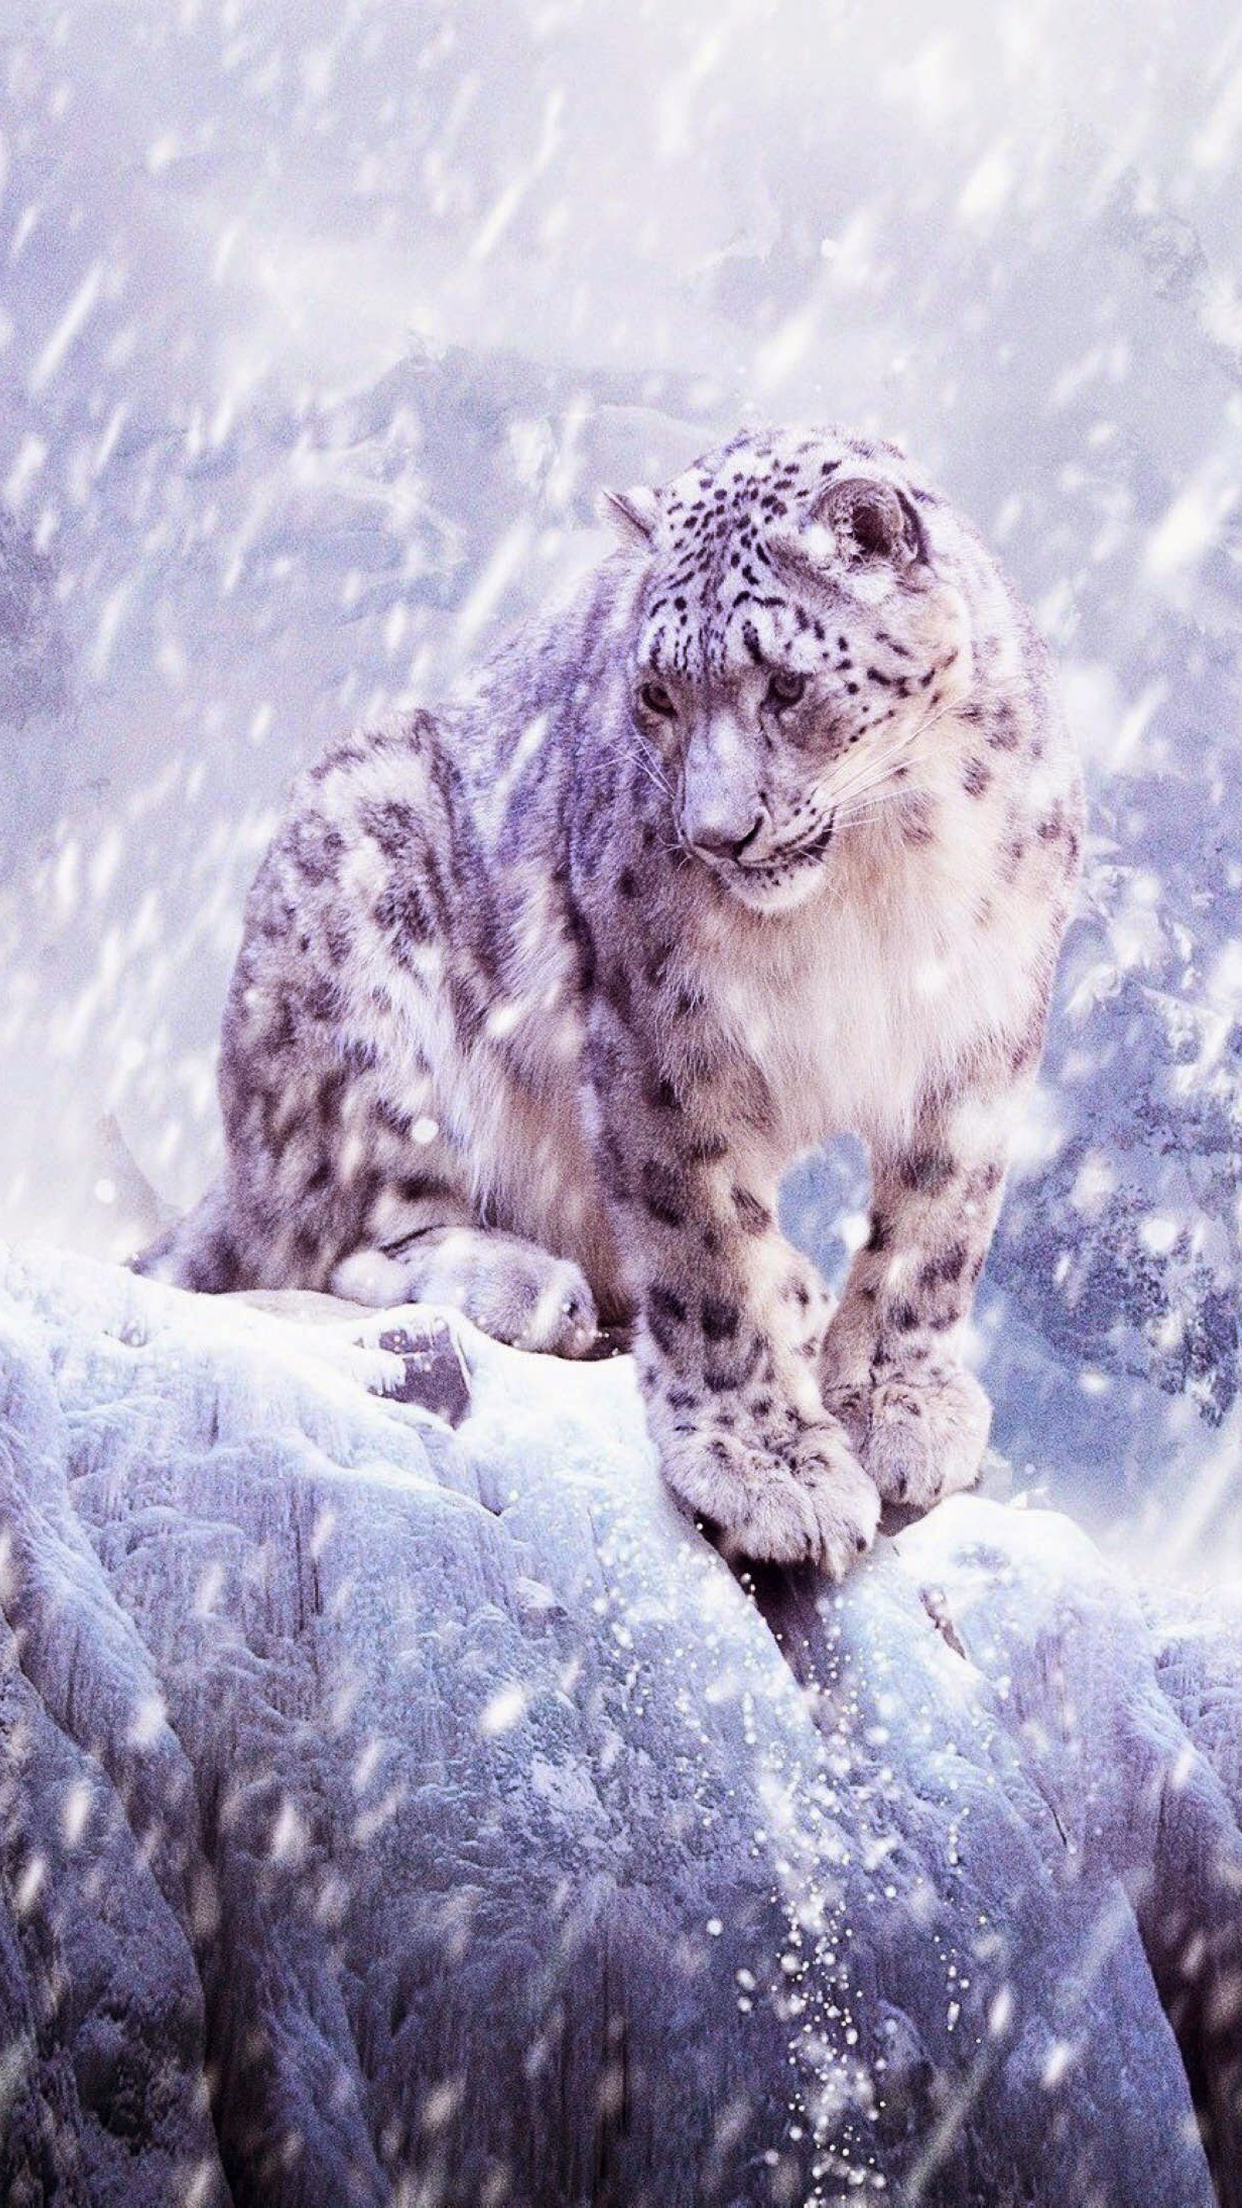 Leopard Of Snow Wallpaper For Iphone 11 Pro Max X 8 7 6 Free Download On 3wallpapers